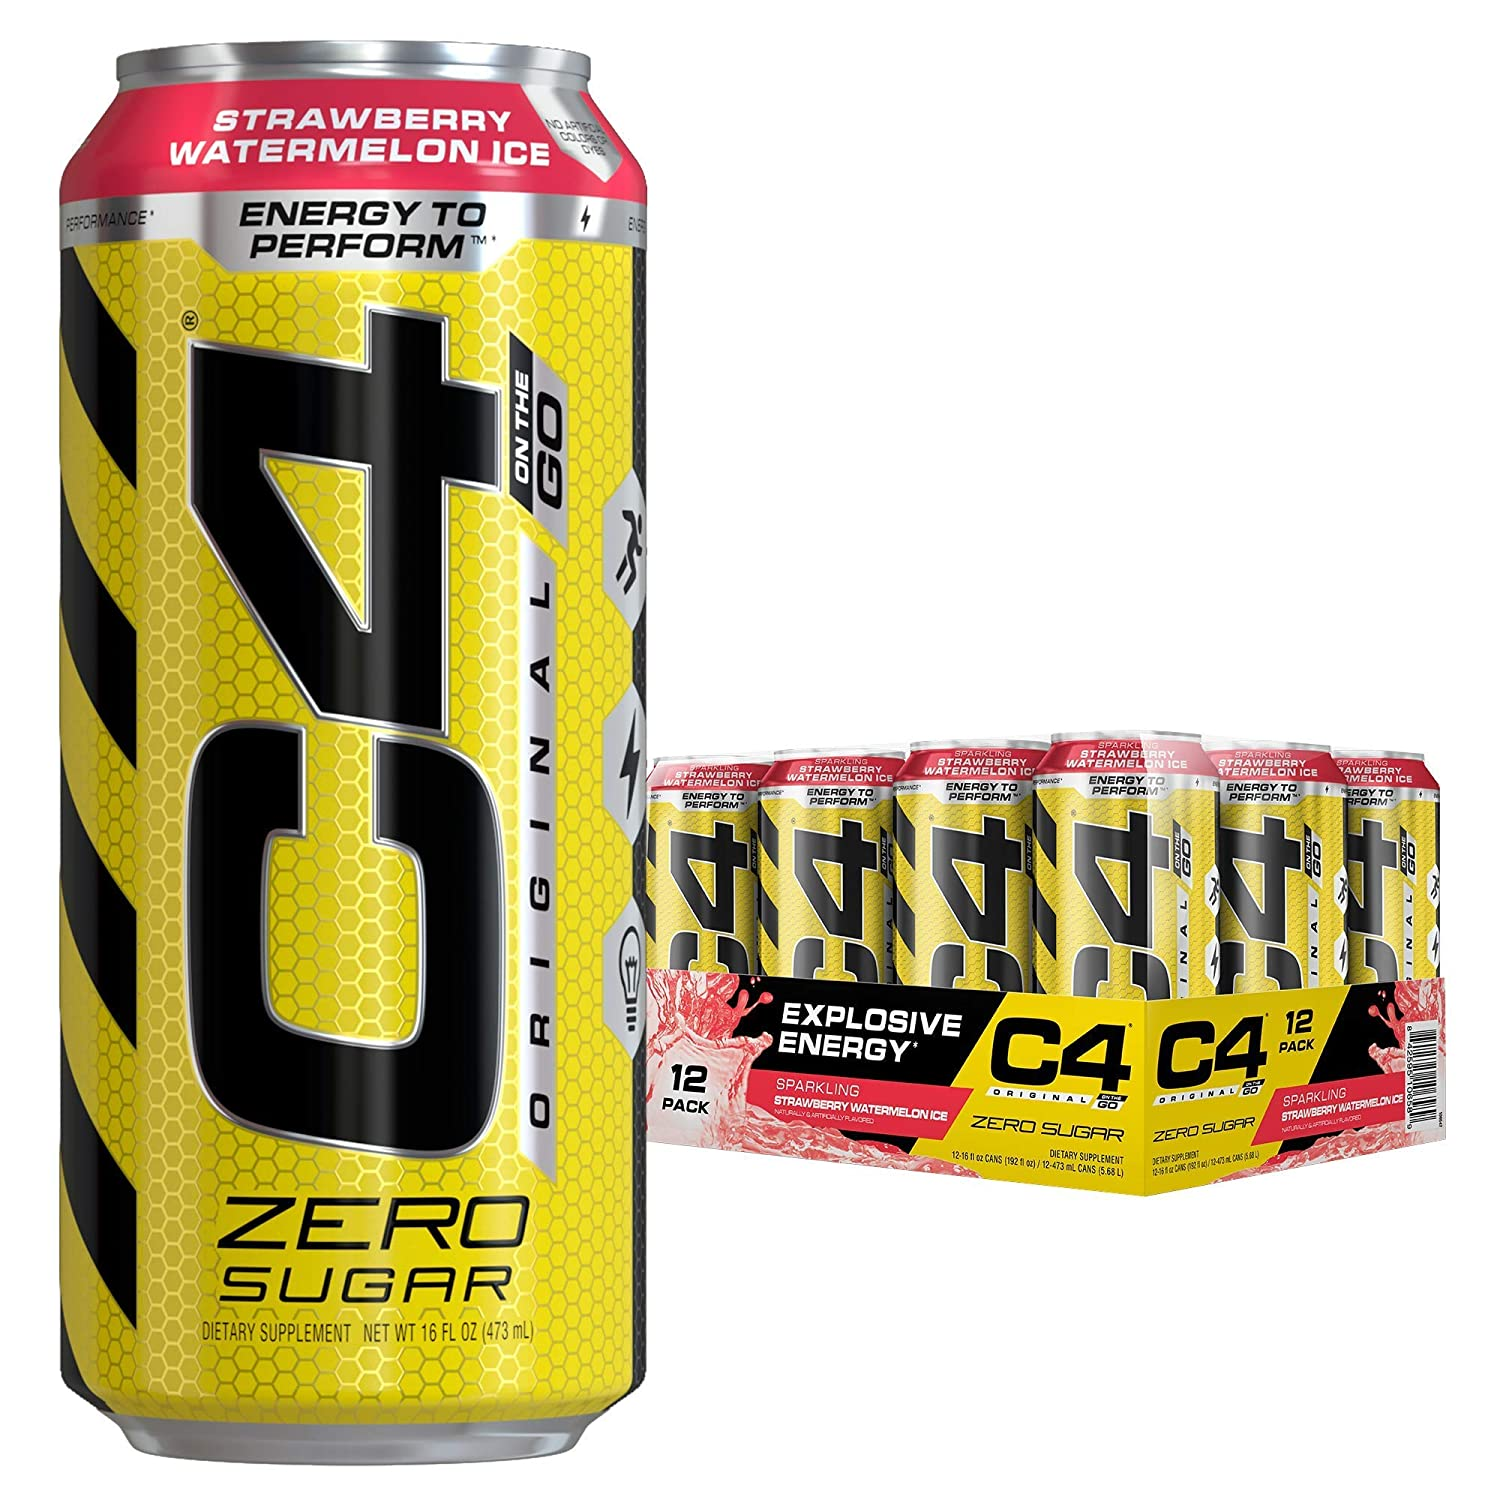 C4 On The Go >> Cellucor C4 Original Carbonated Zero Sugar Energy Drink Pre Workout Drink Beta Alanine Sparkling Strawberry Watermelon Ice 16 Fl Oz Pack Of 12